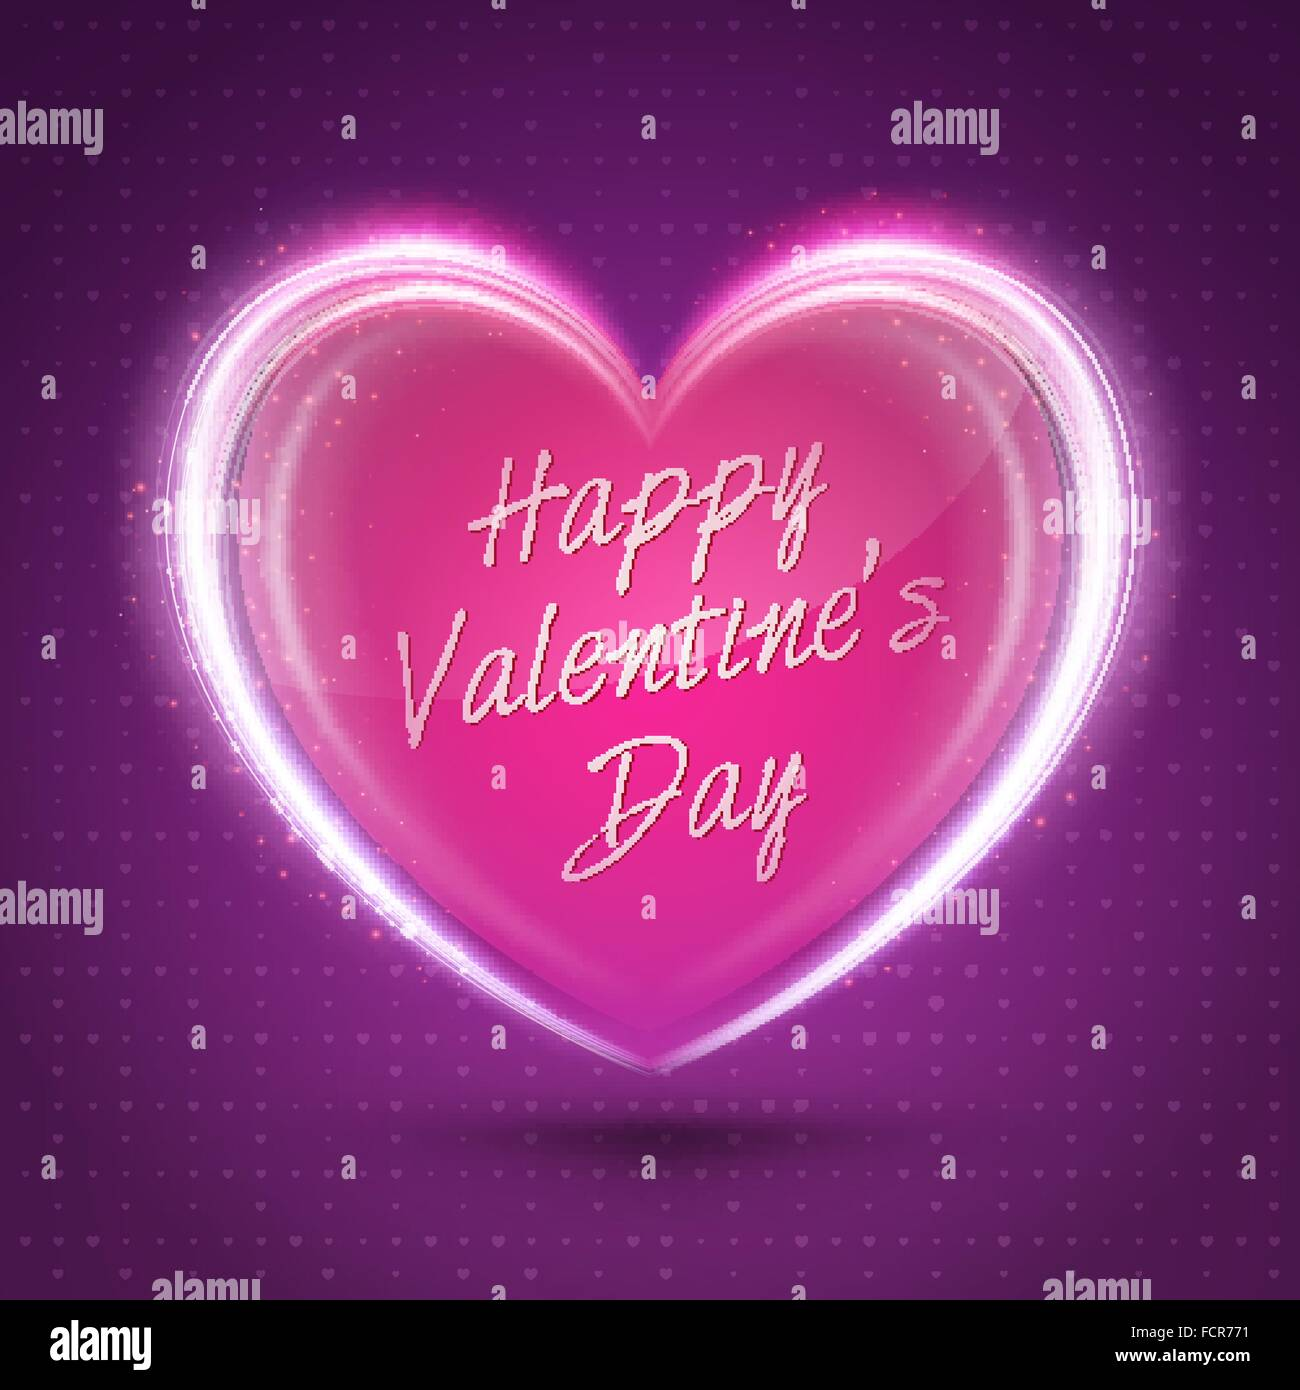 Valentines Day Abstract Background Romantic Vector Illustration For